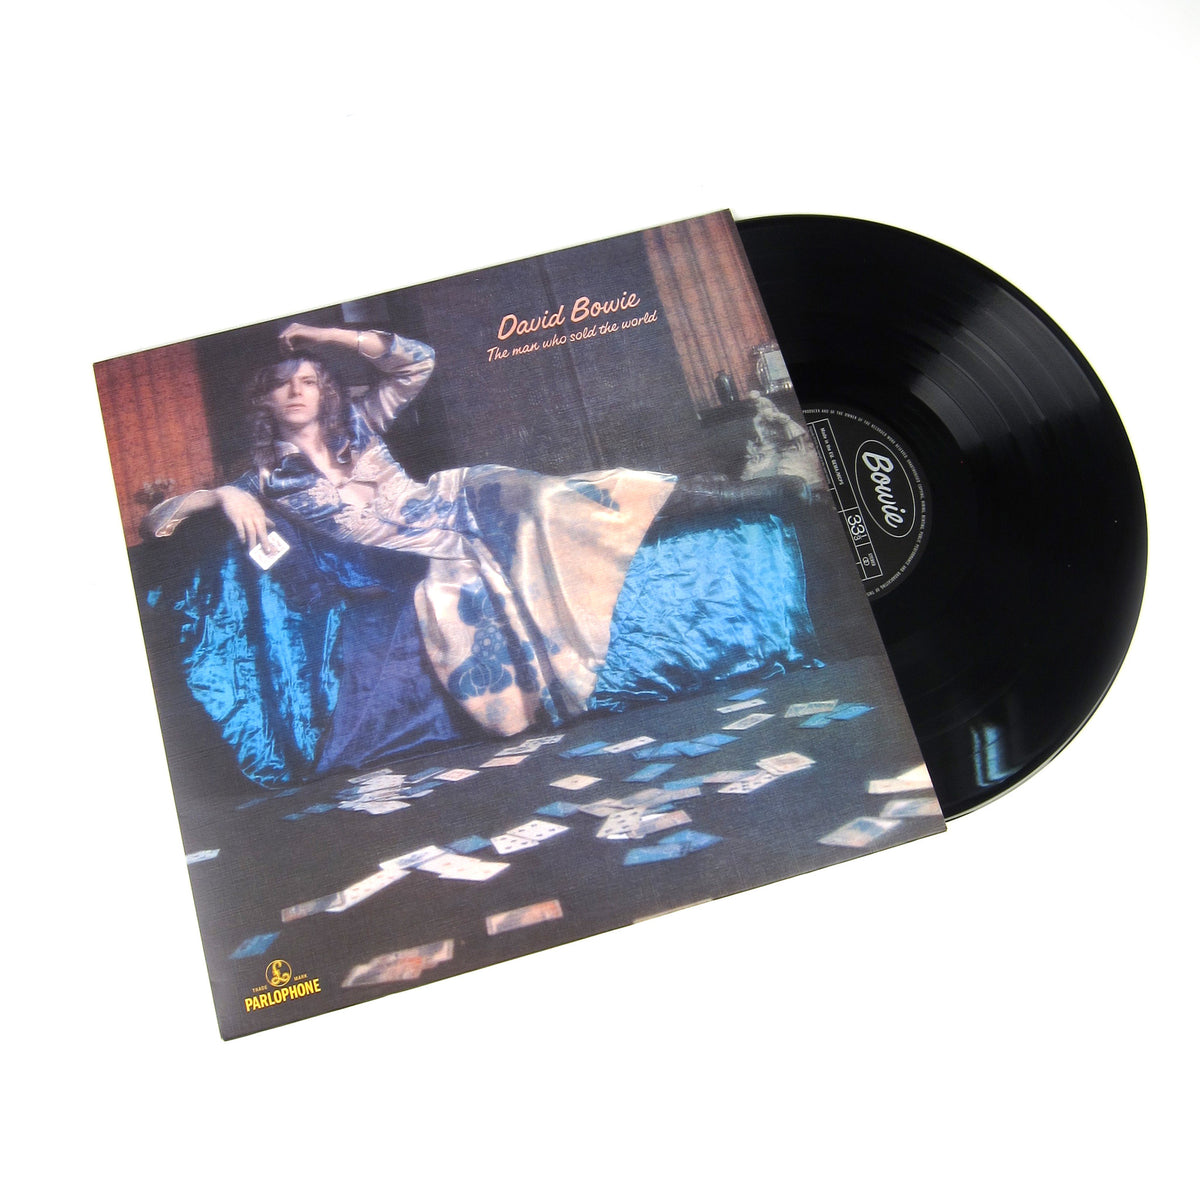 David Bowie: The Man Who Sold The World (180g) Vinyl LP